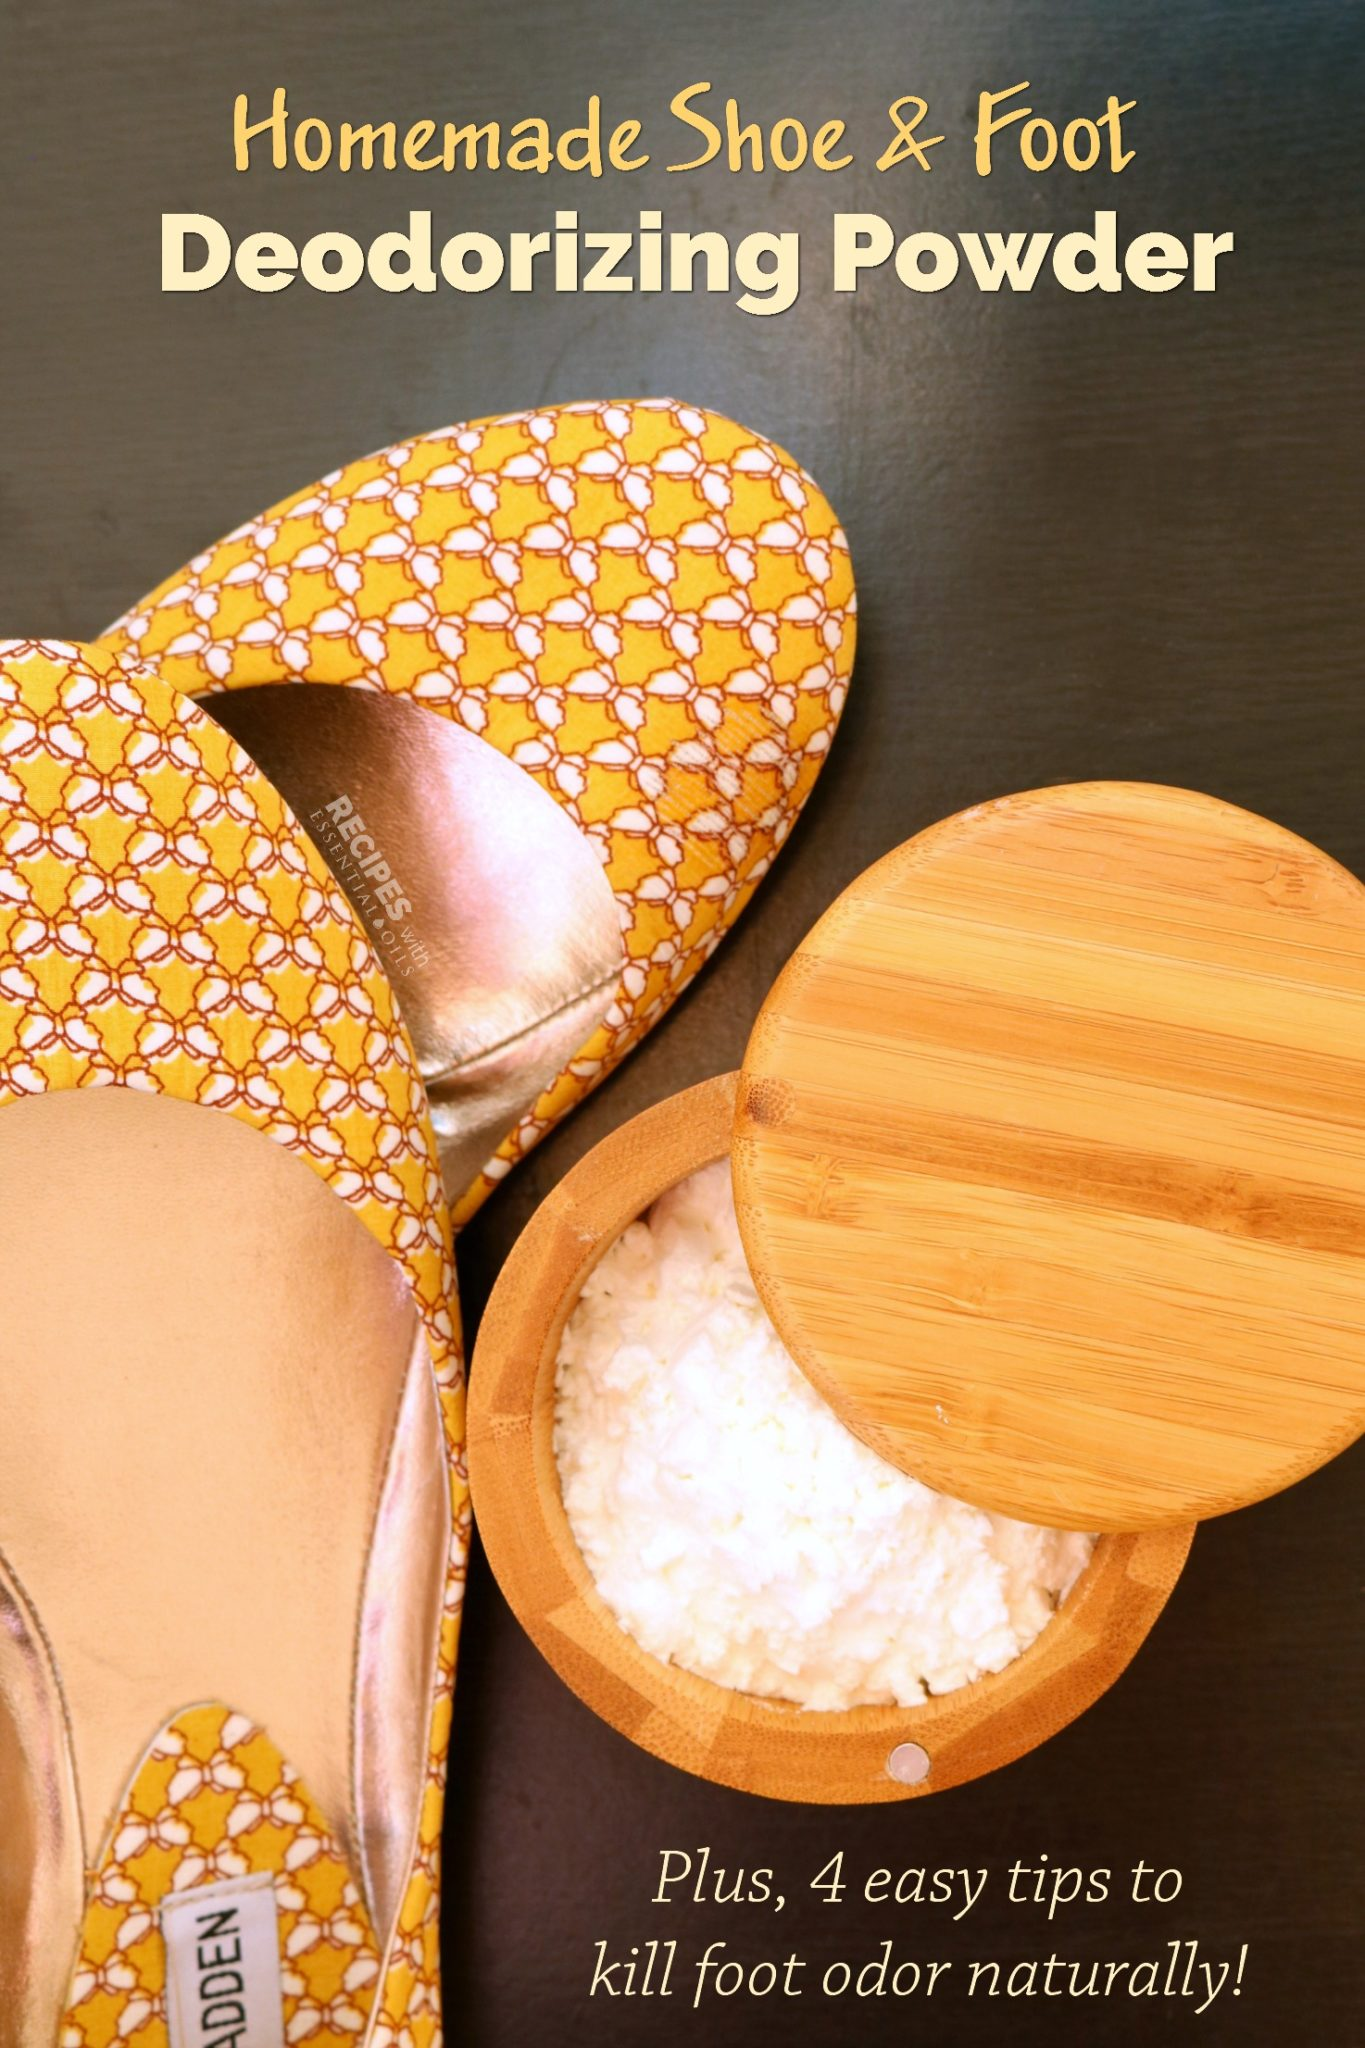 Shoe and Foot Deodorizing Powder Recipe from RecipeswithEssentialOils.com